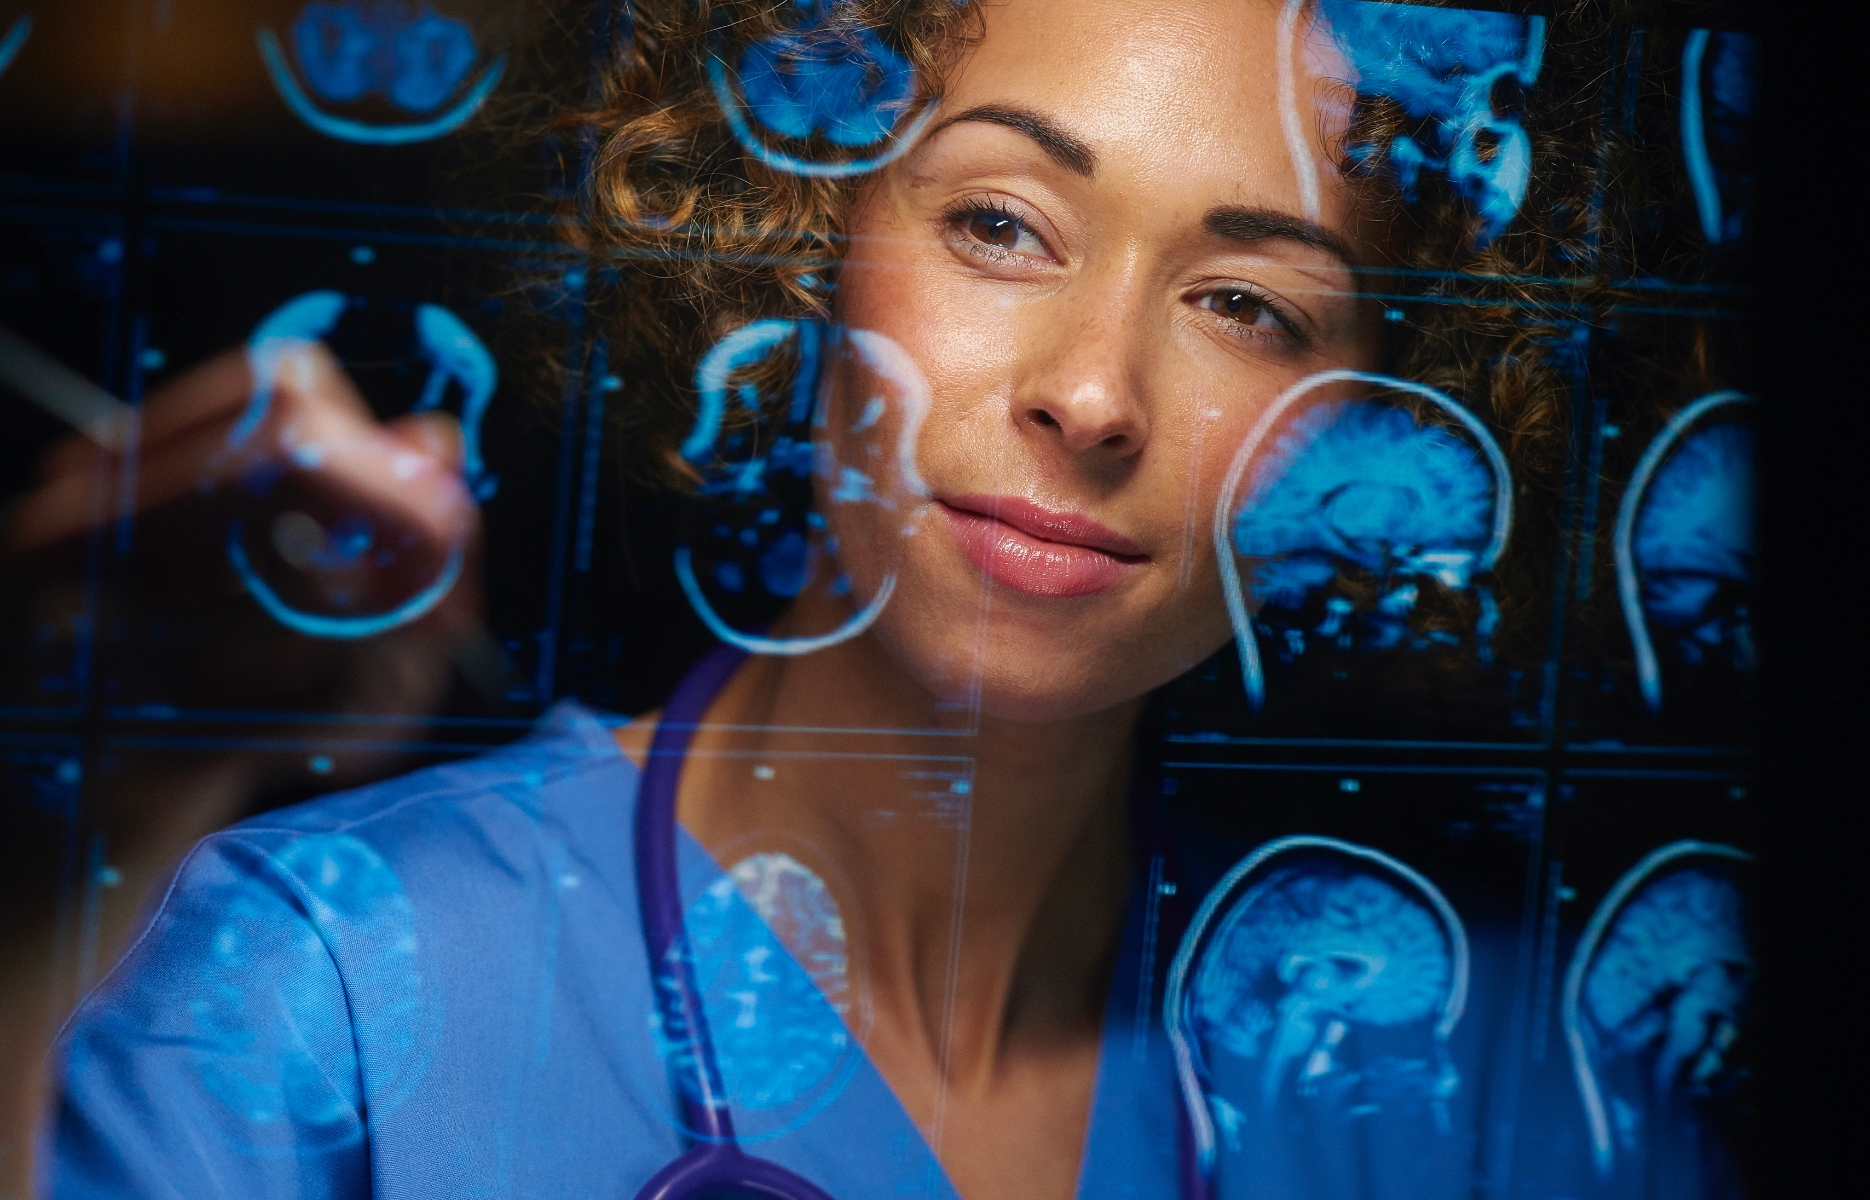 A healthcare professional looking at body scans.